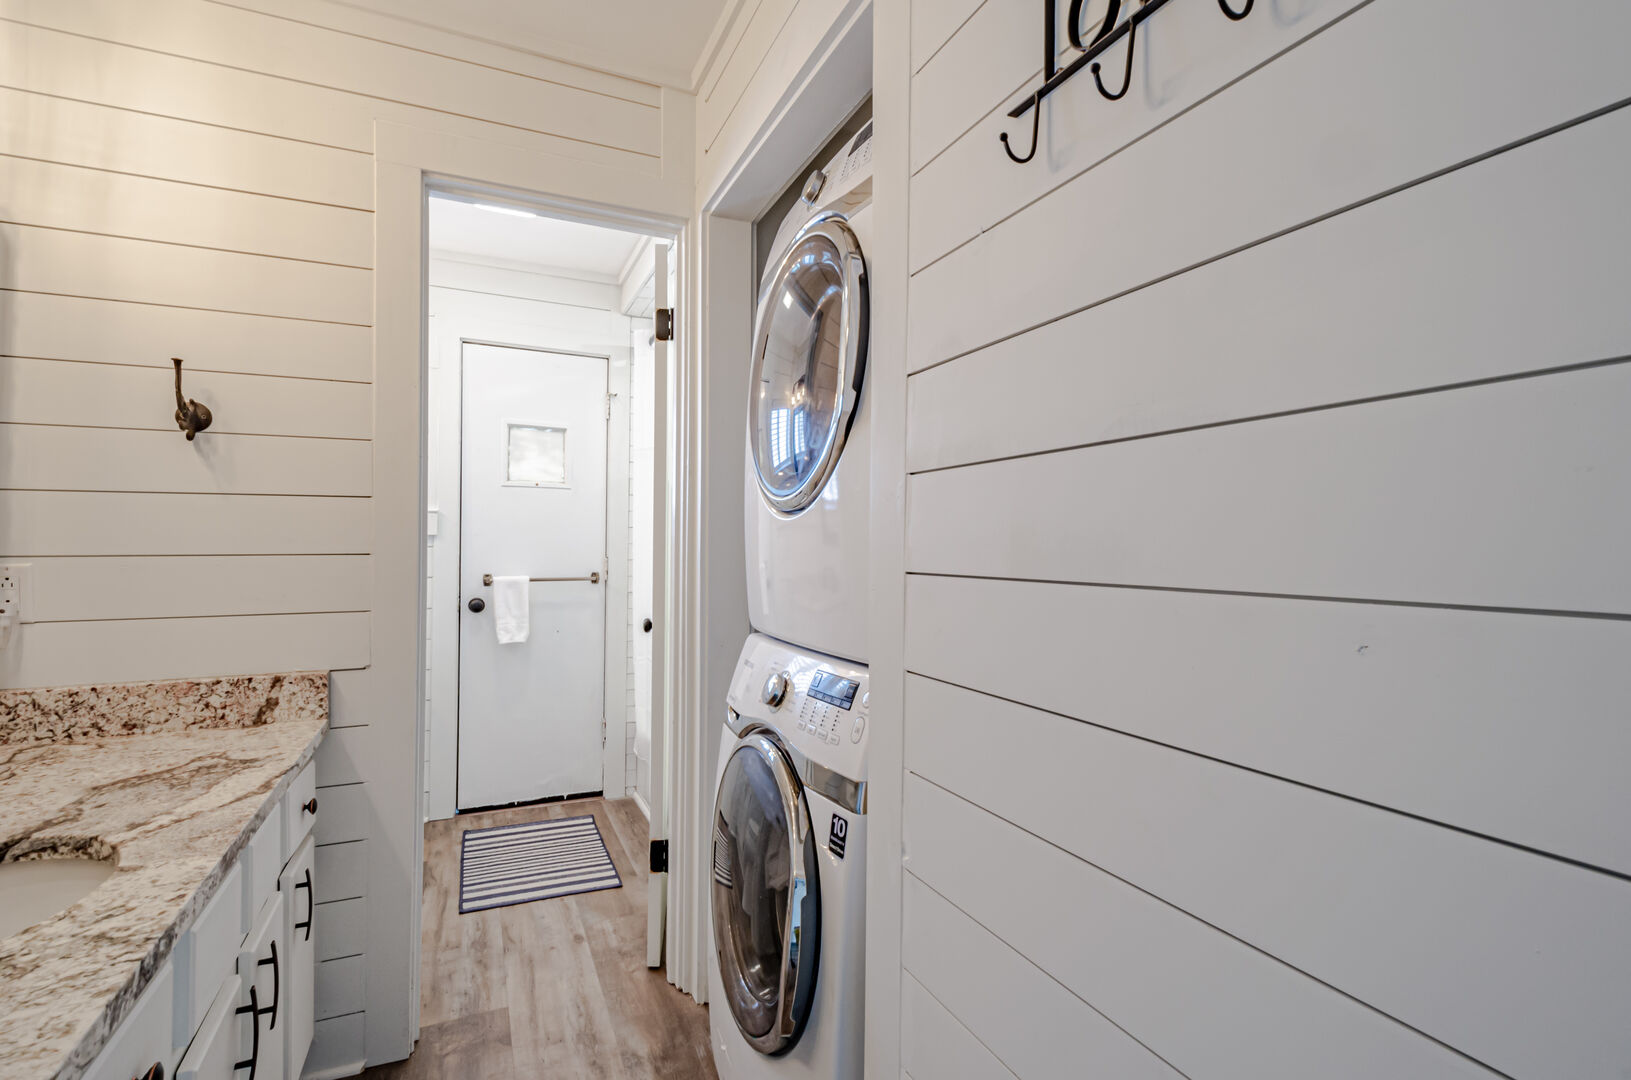 Laundry machine located in hall bathroom.